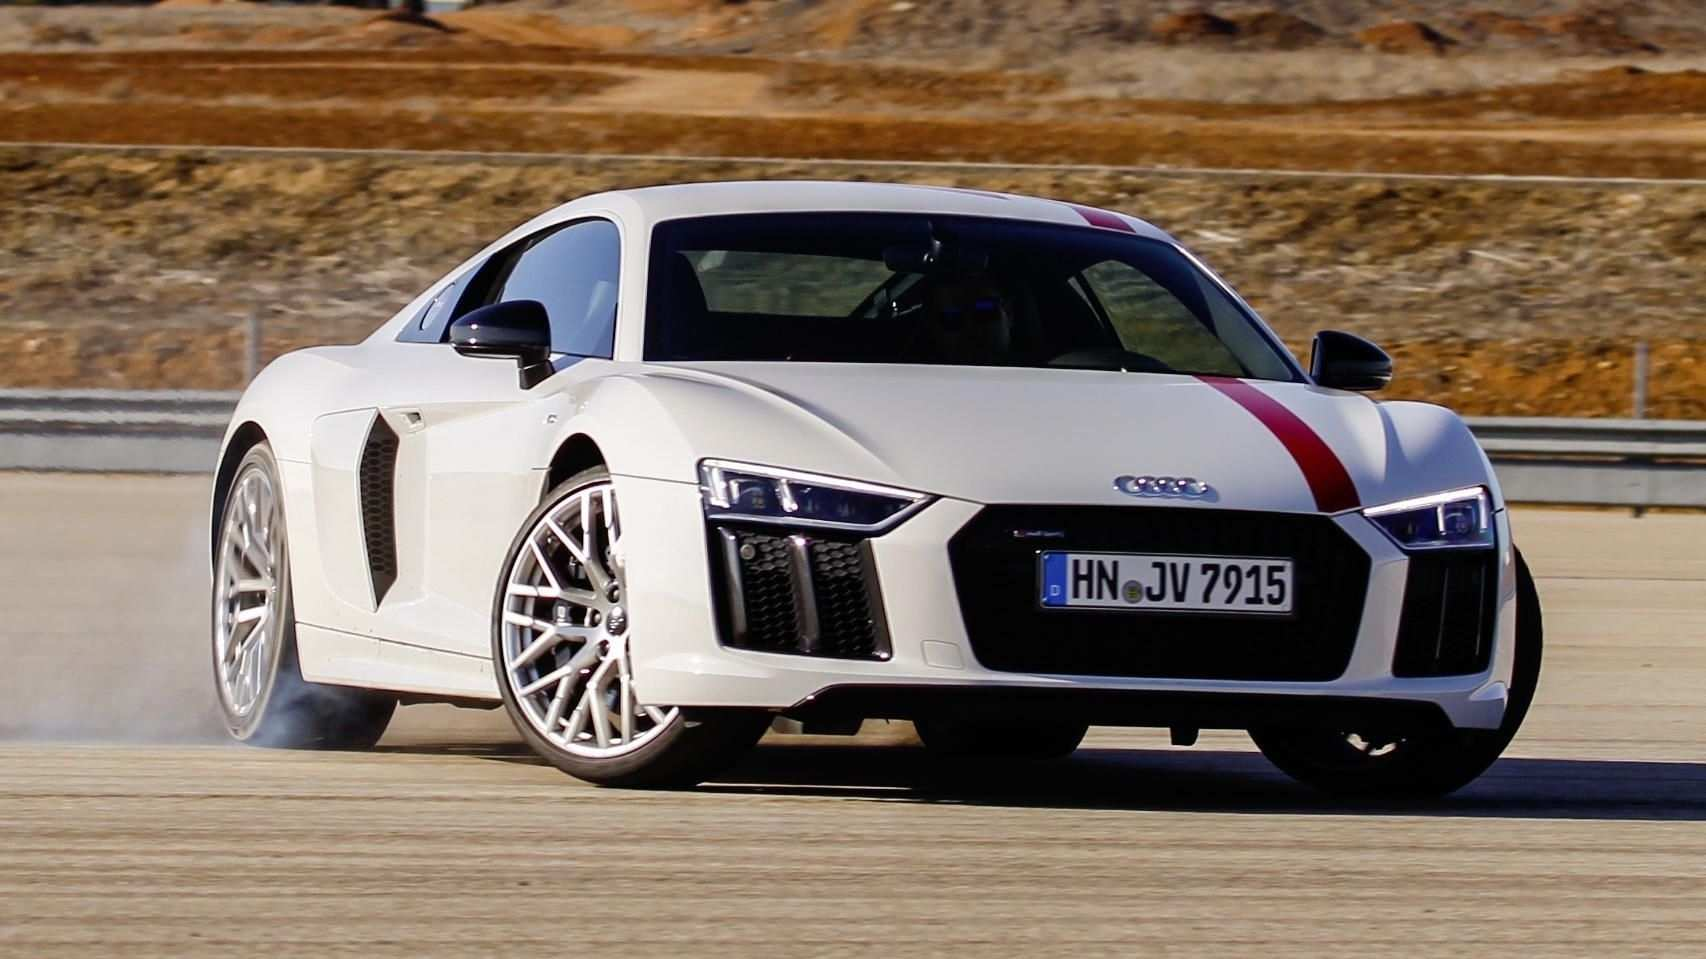 79 Concept of 2020 Audi R8 LMXs Prices with 2020 Audi R8 LMXs